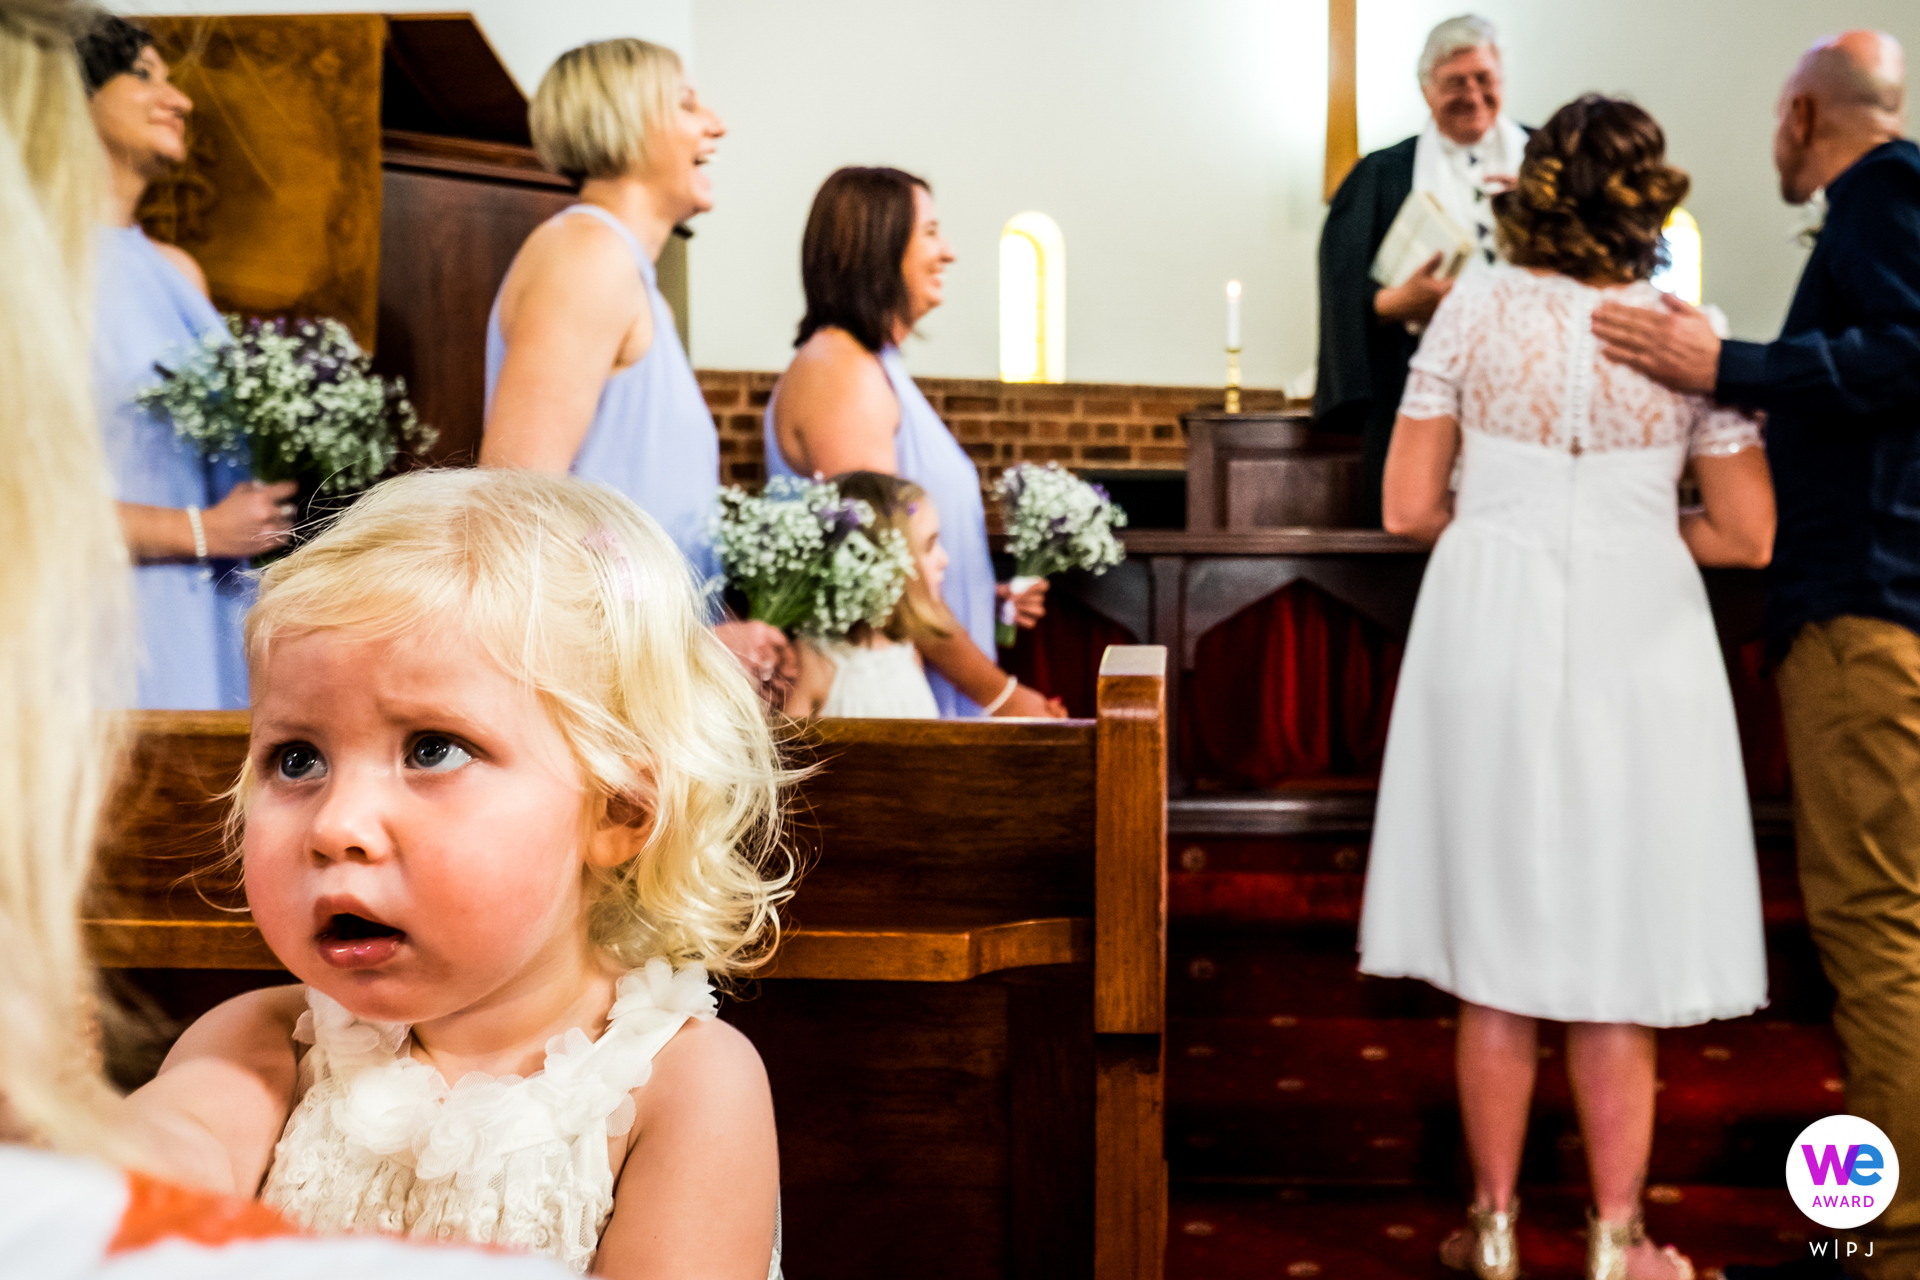 Glentana, Garden Route, South Africa Elopement Ceremony Photo | A young girl voices her dislike during the ceremony